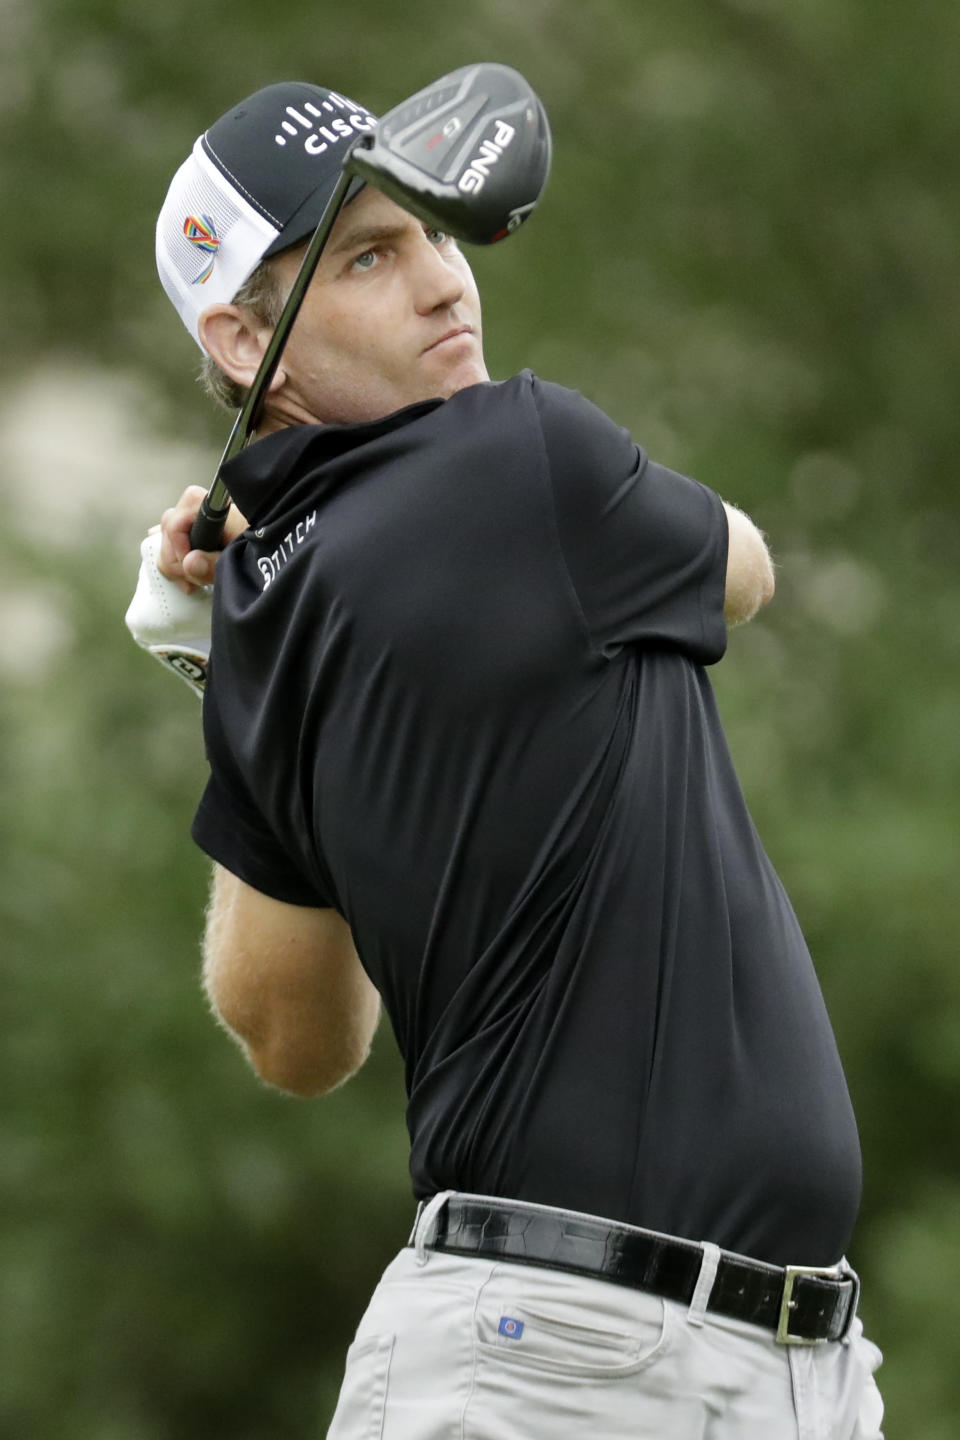 Brendon Todd watches his tee shot on the 18th hole during the third round of the World Golf Championship-FedEx St. Jude Invitational Saturday, Aug. 1, 2020, in Memphis, Tenn. (AP Photo/Mark Humphrey)